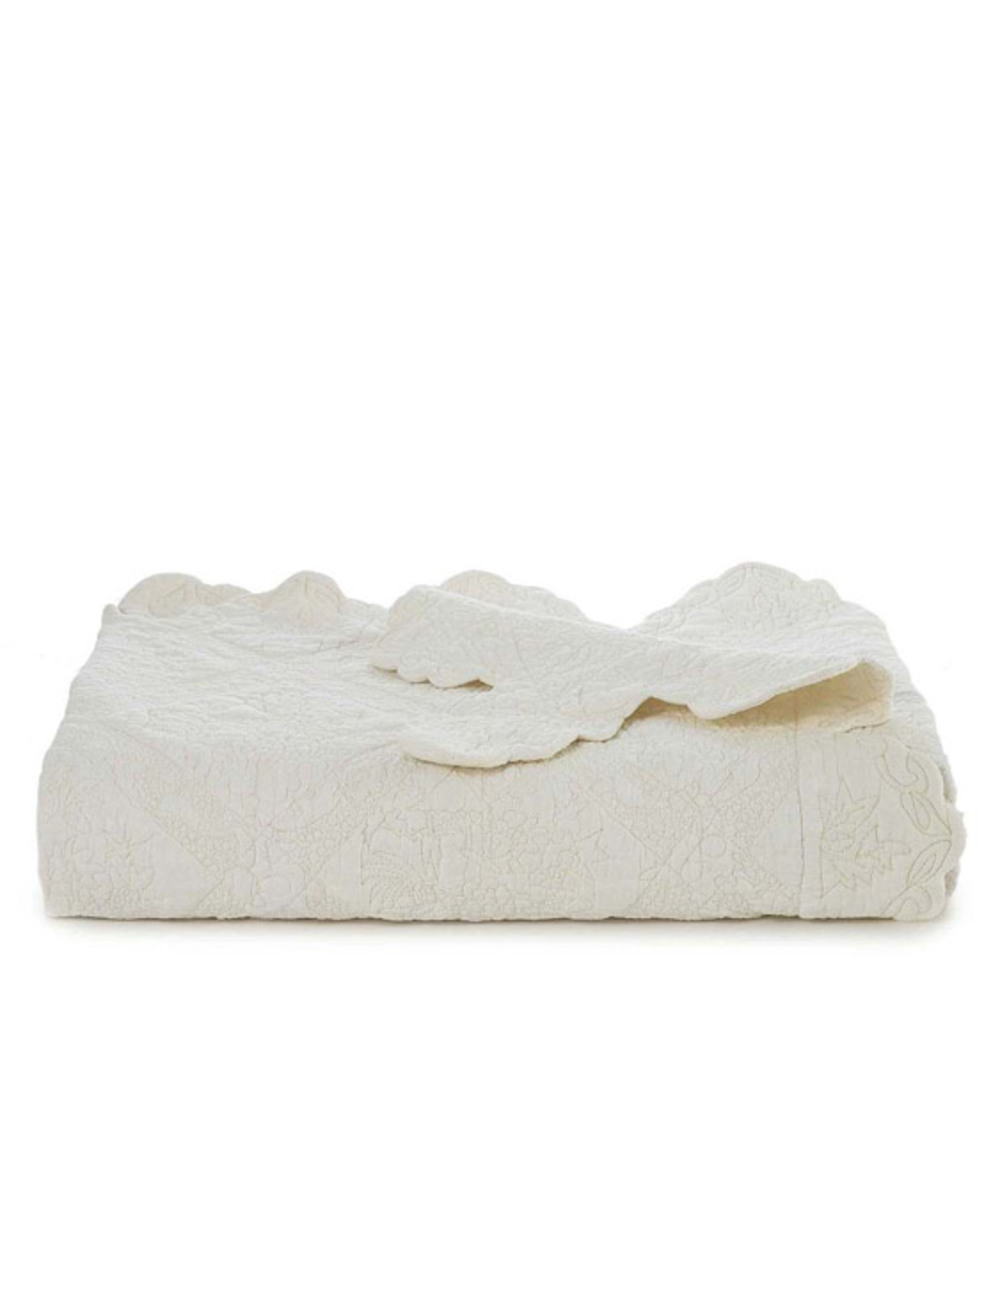 Amity Imports - Zella King Quilt in White